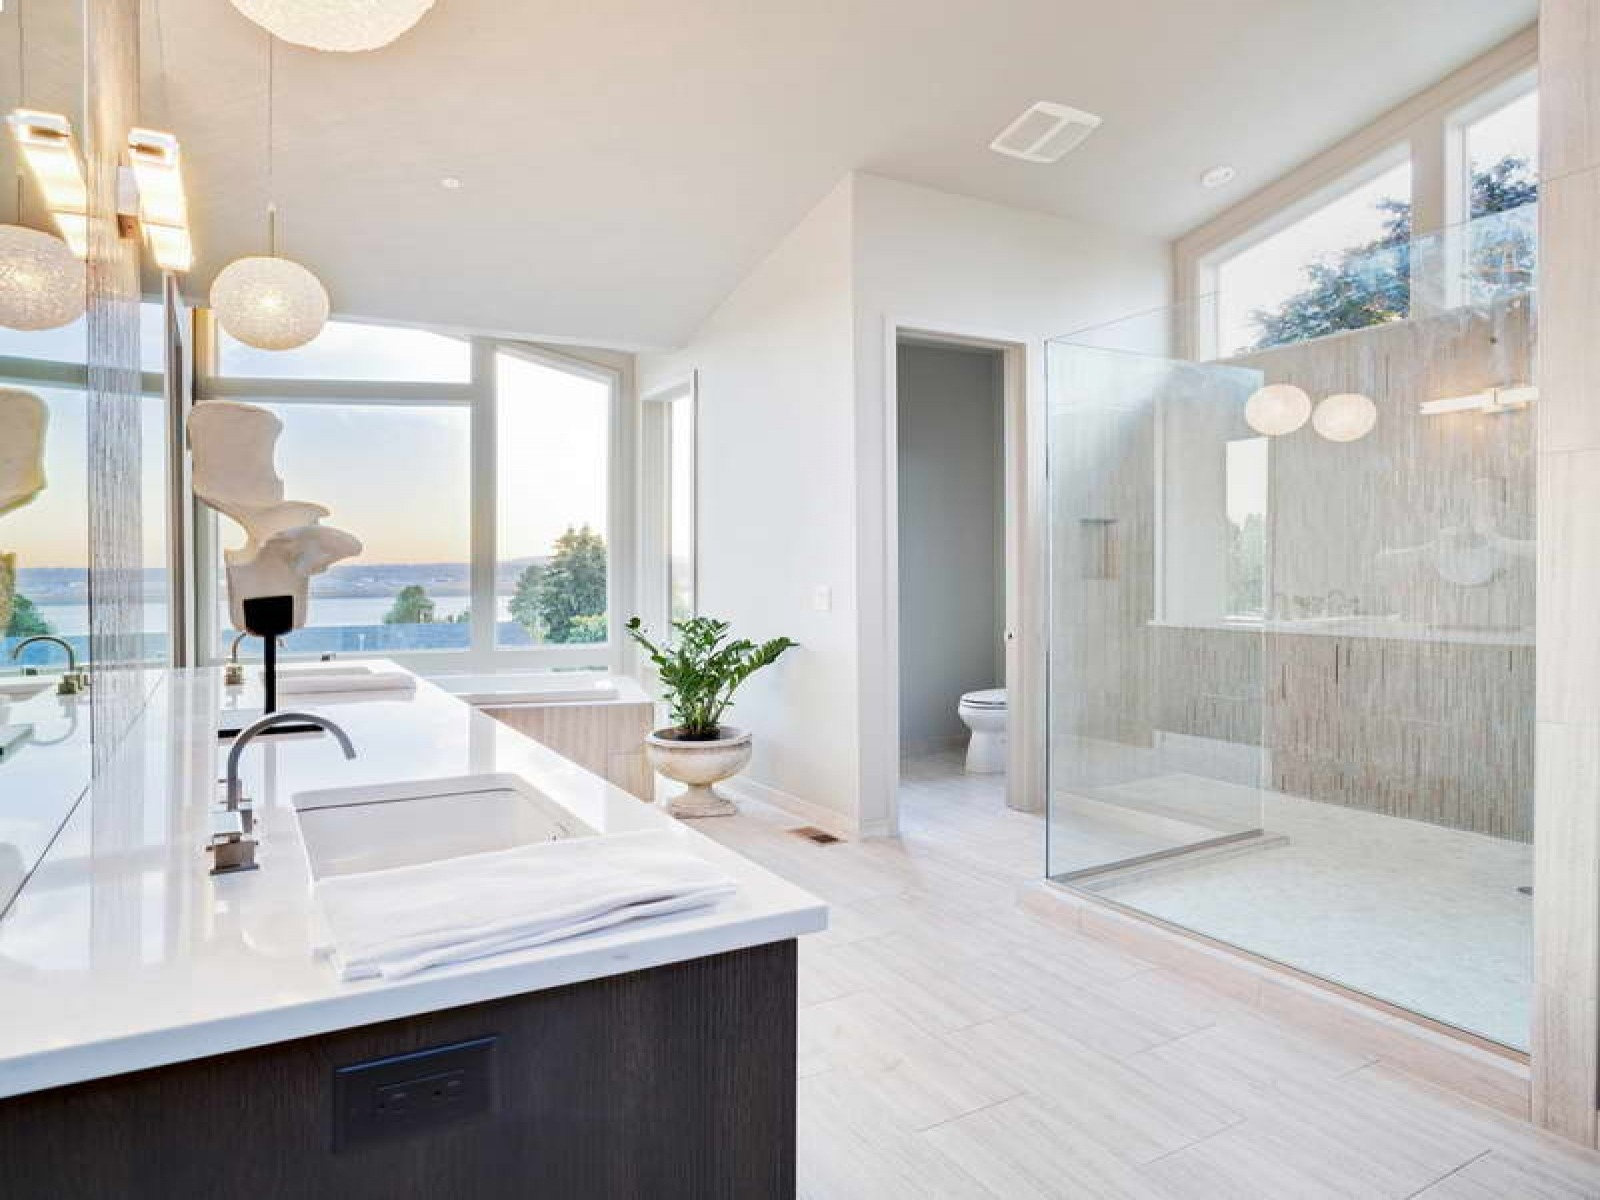 Bathroom upgrades that are worth the cost mcdonald for Bathroom designs glass